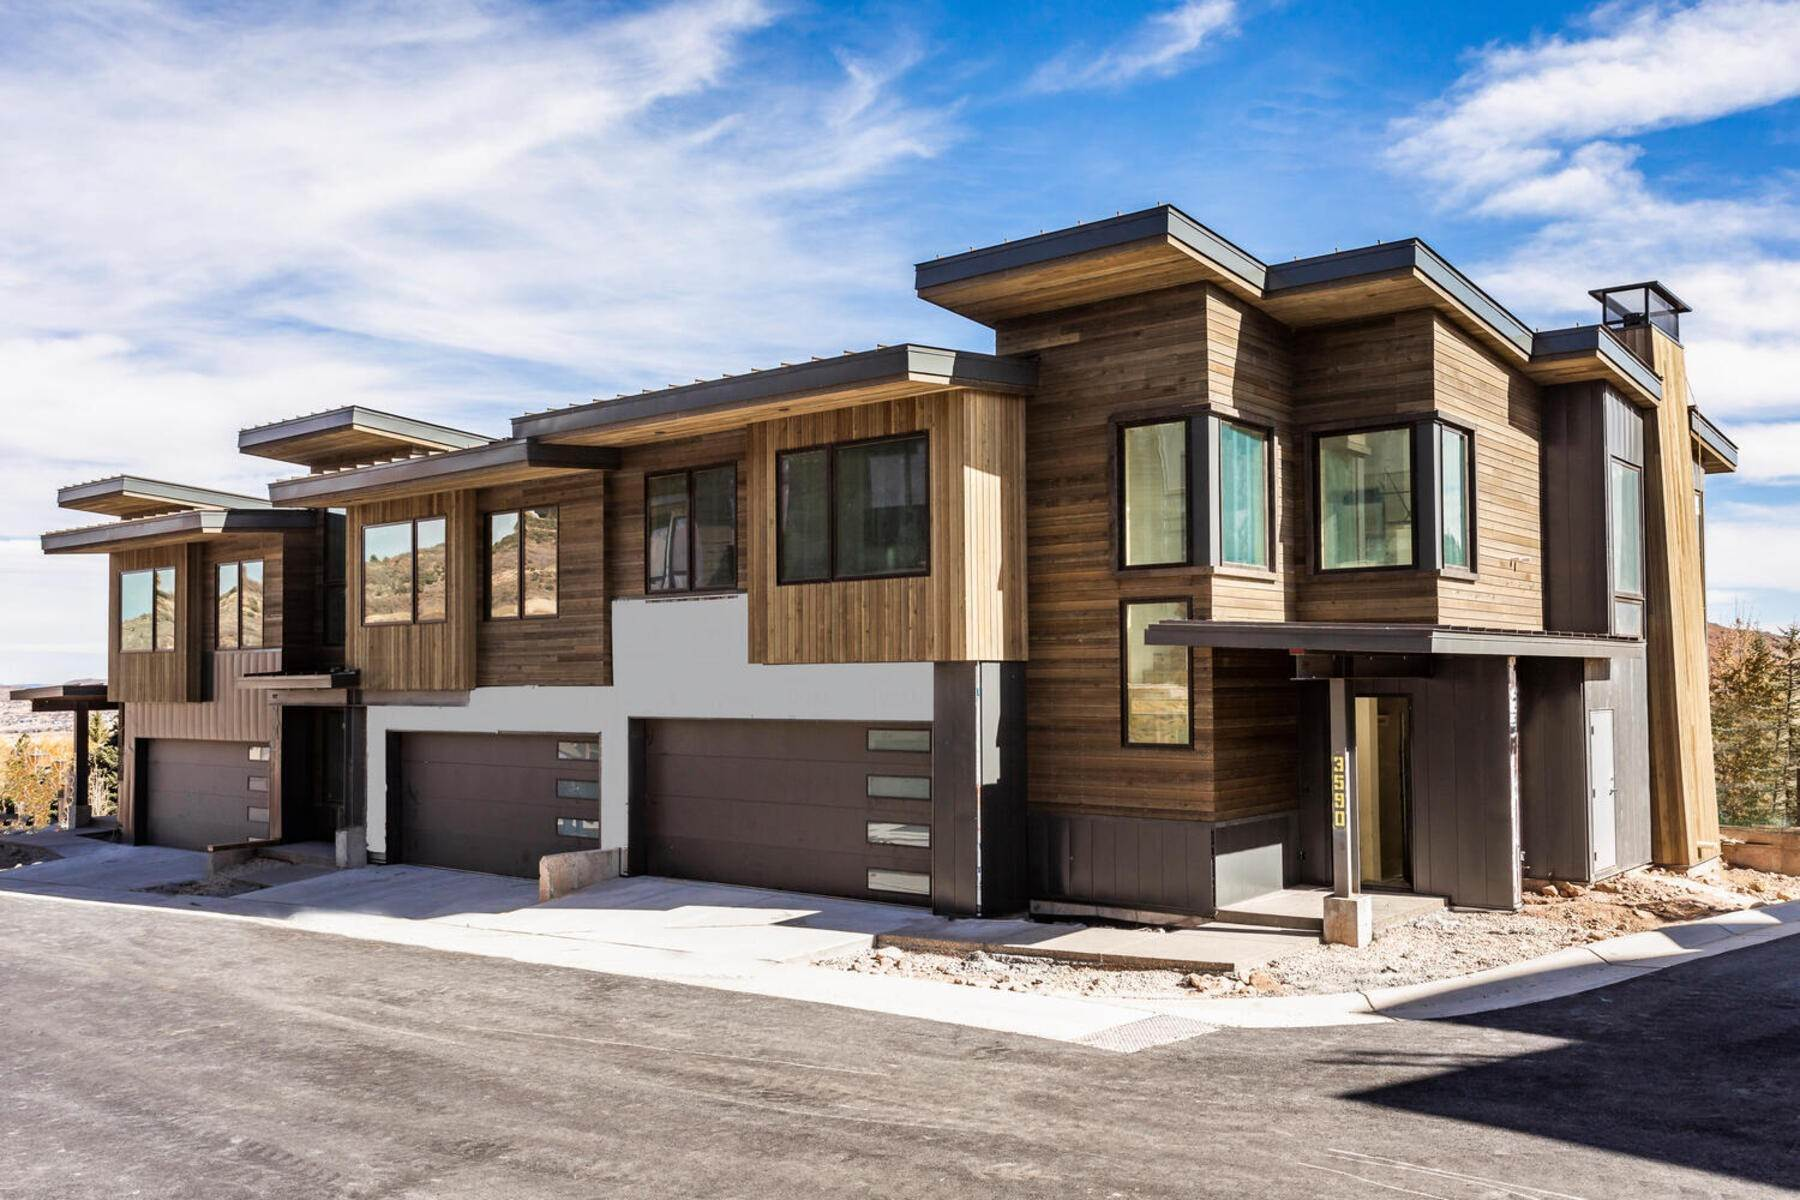 50. townhouses for Sale at Ski-In Town Homes in Canyons Village 3472 Ridgeline Drive Park City, Utah 84098 United States